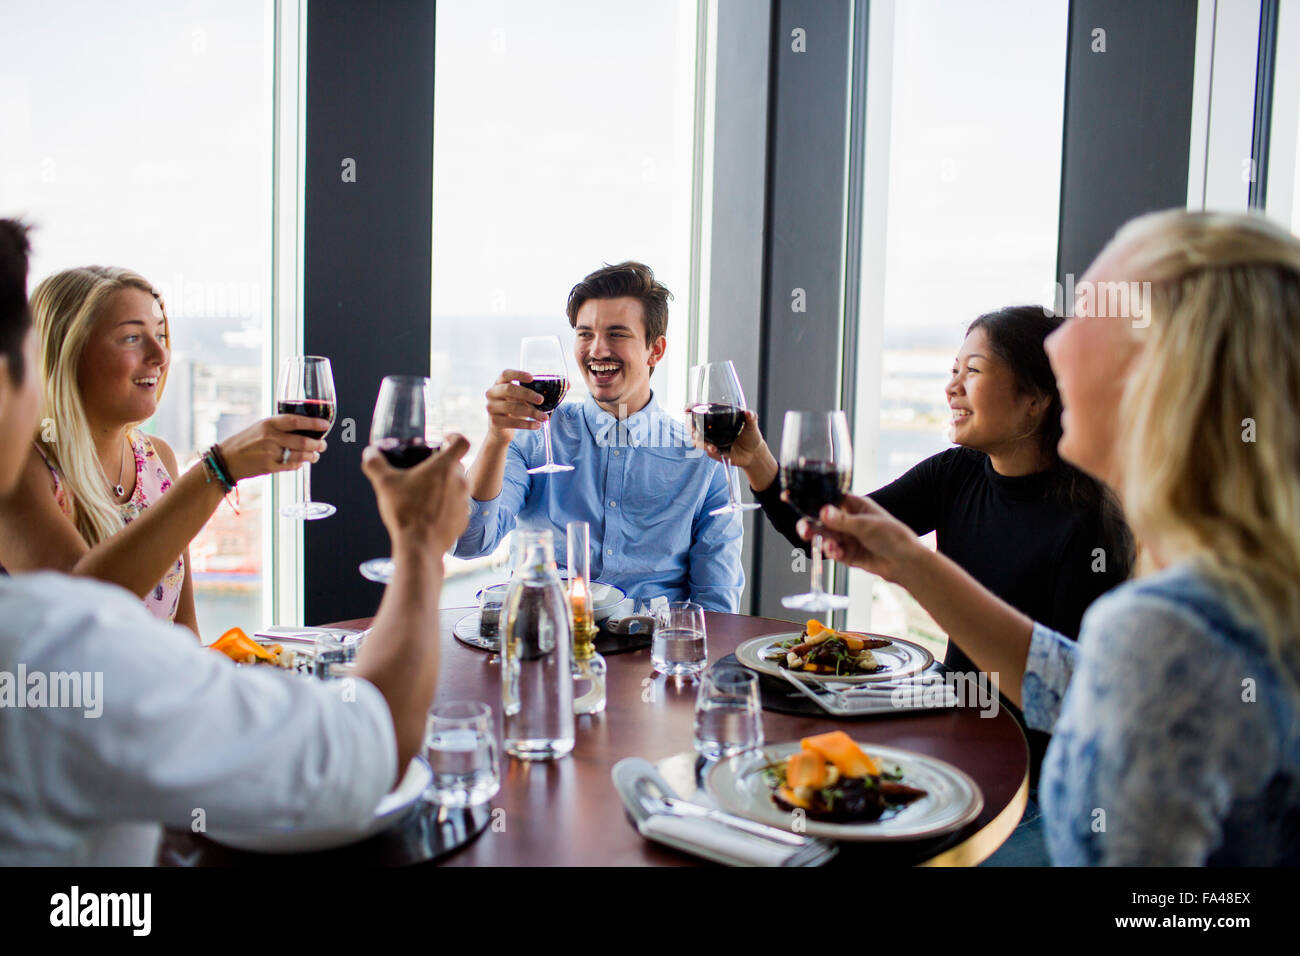 Happy friends toasting with red wine at Sky bar restaurant - Stock Image